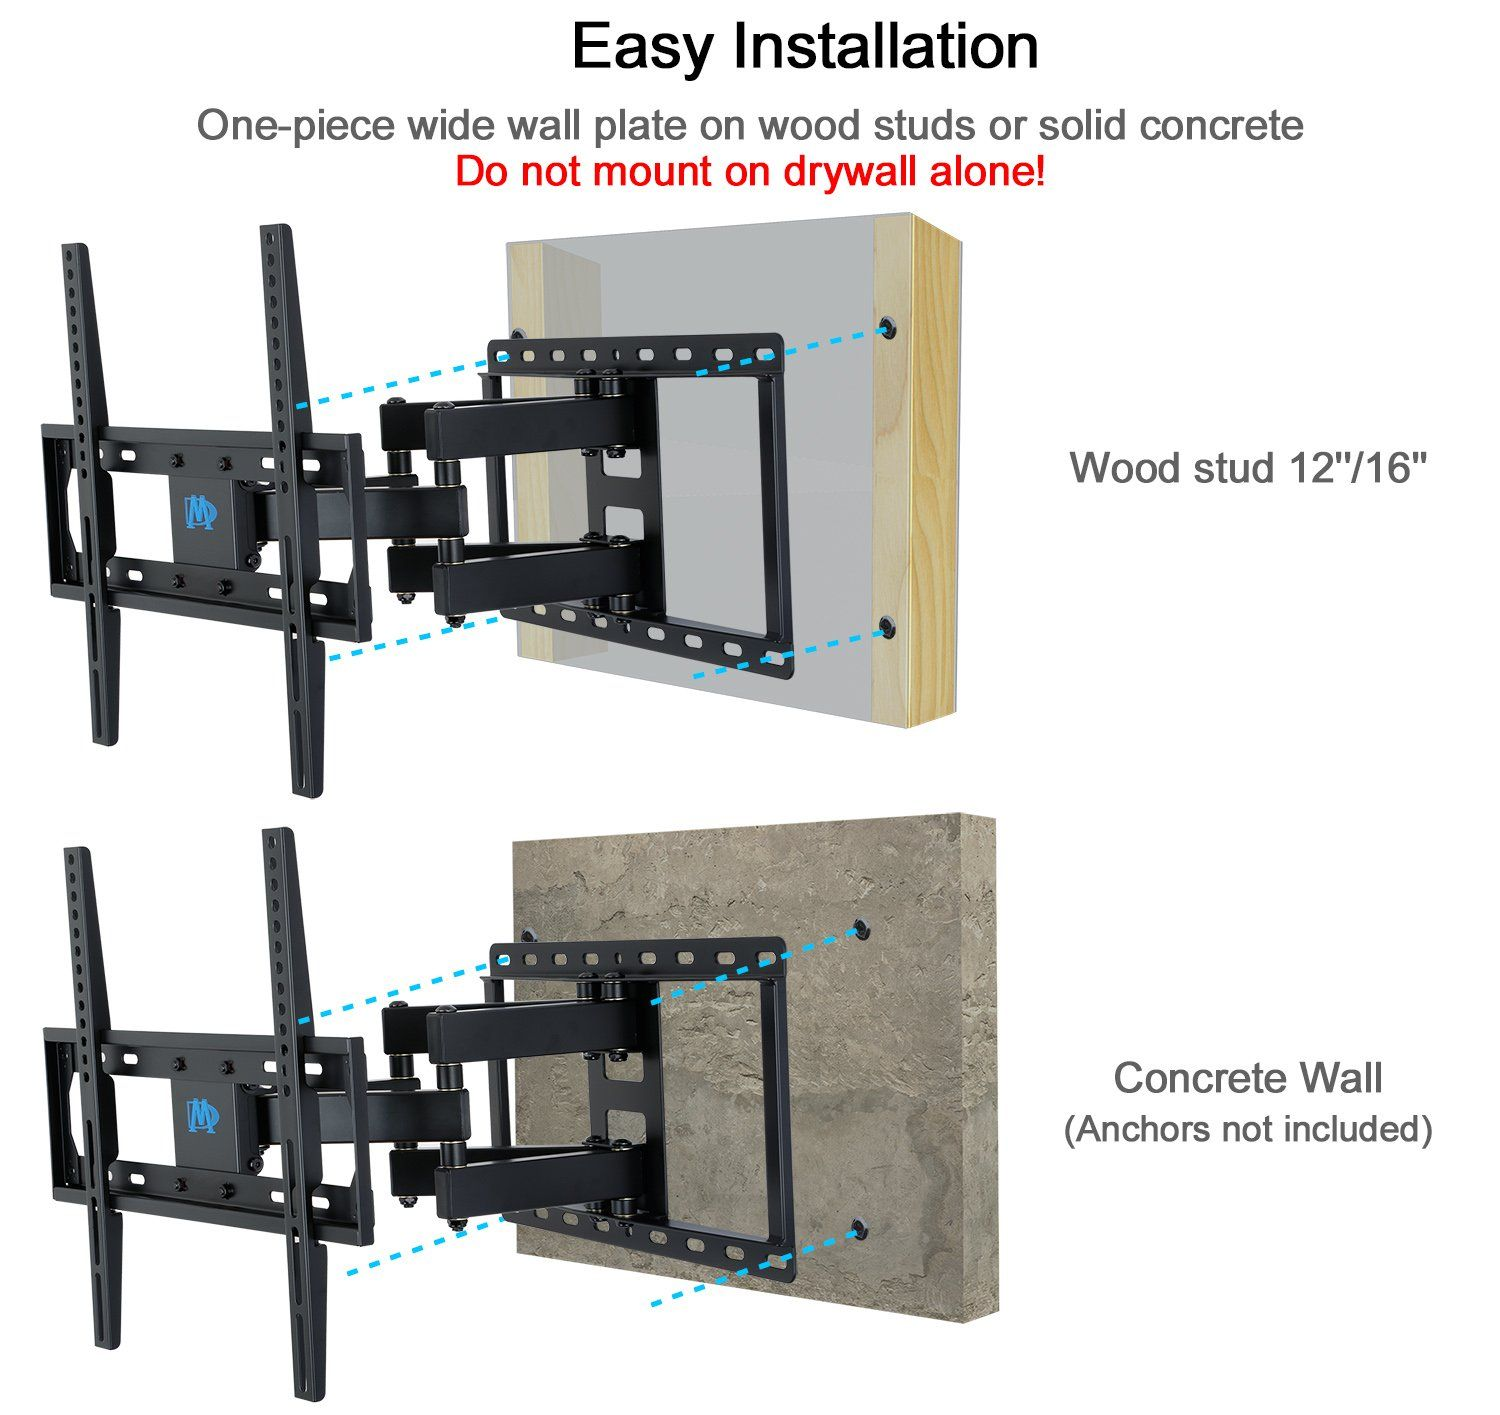 Mounting Dream Md2380 Tv Wall Mount Bracket For Most 2655 Inch Led Lcd Oled And Plasma Flat Screen Tv With Full M Tv Wall Mount Bracket Wall Mounted Tv Tv Wall